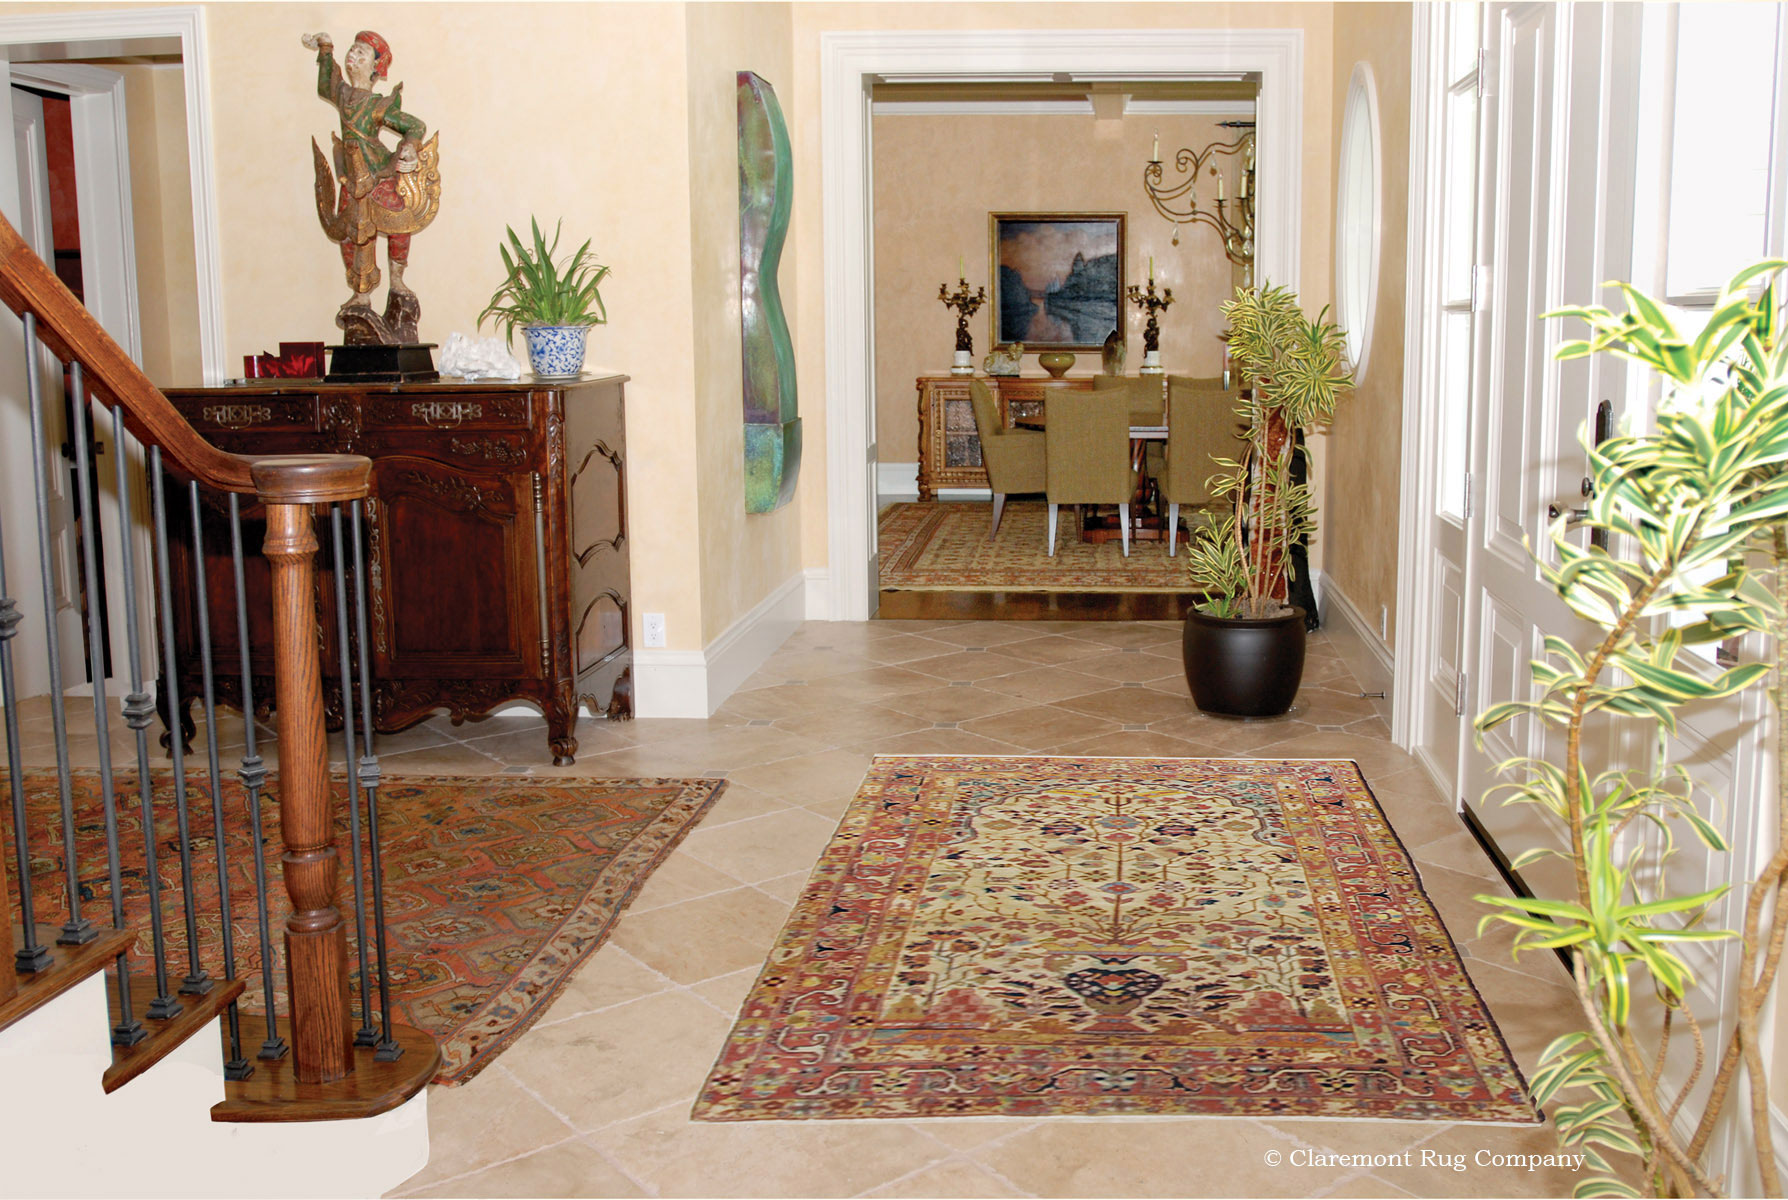 Foyer Rug Sets : Serpai antique carpet and bakshaish rug in entryway